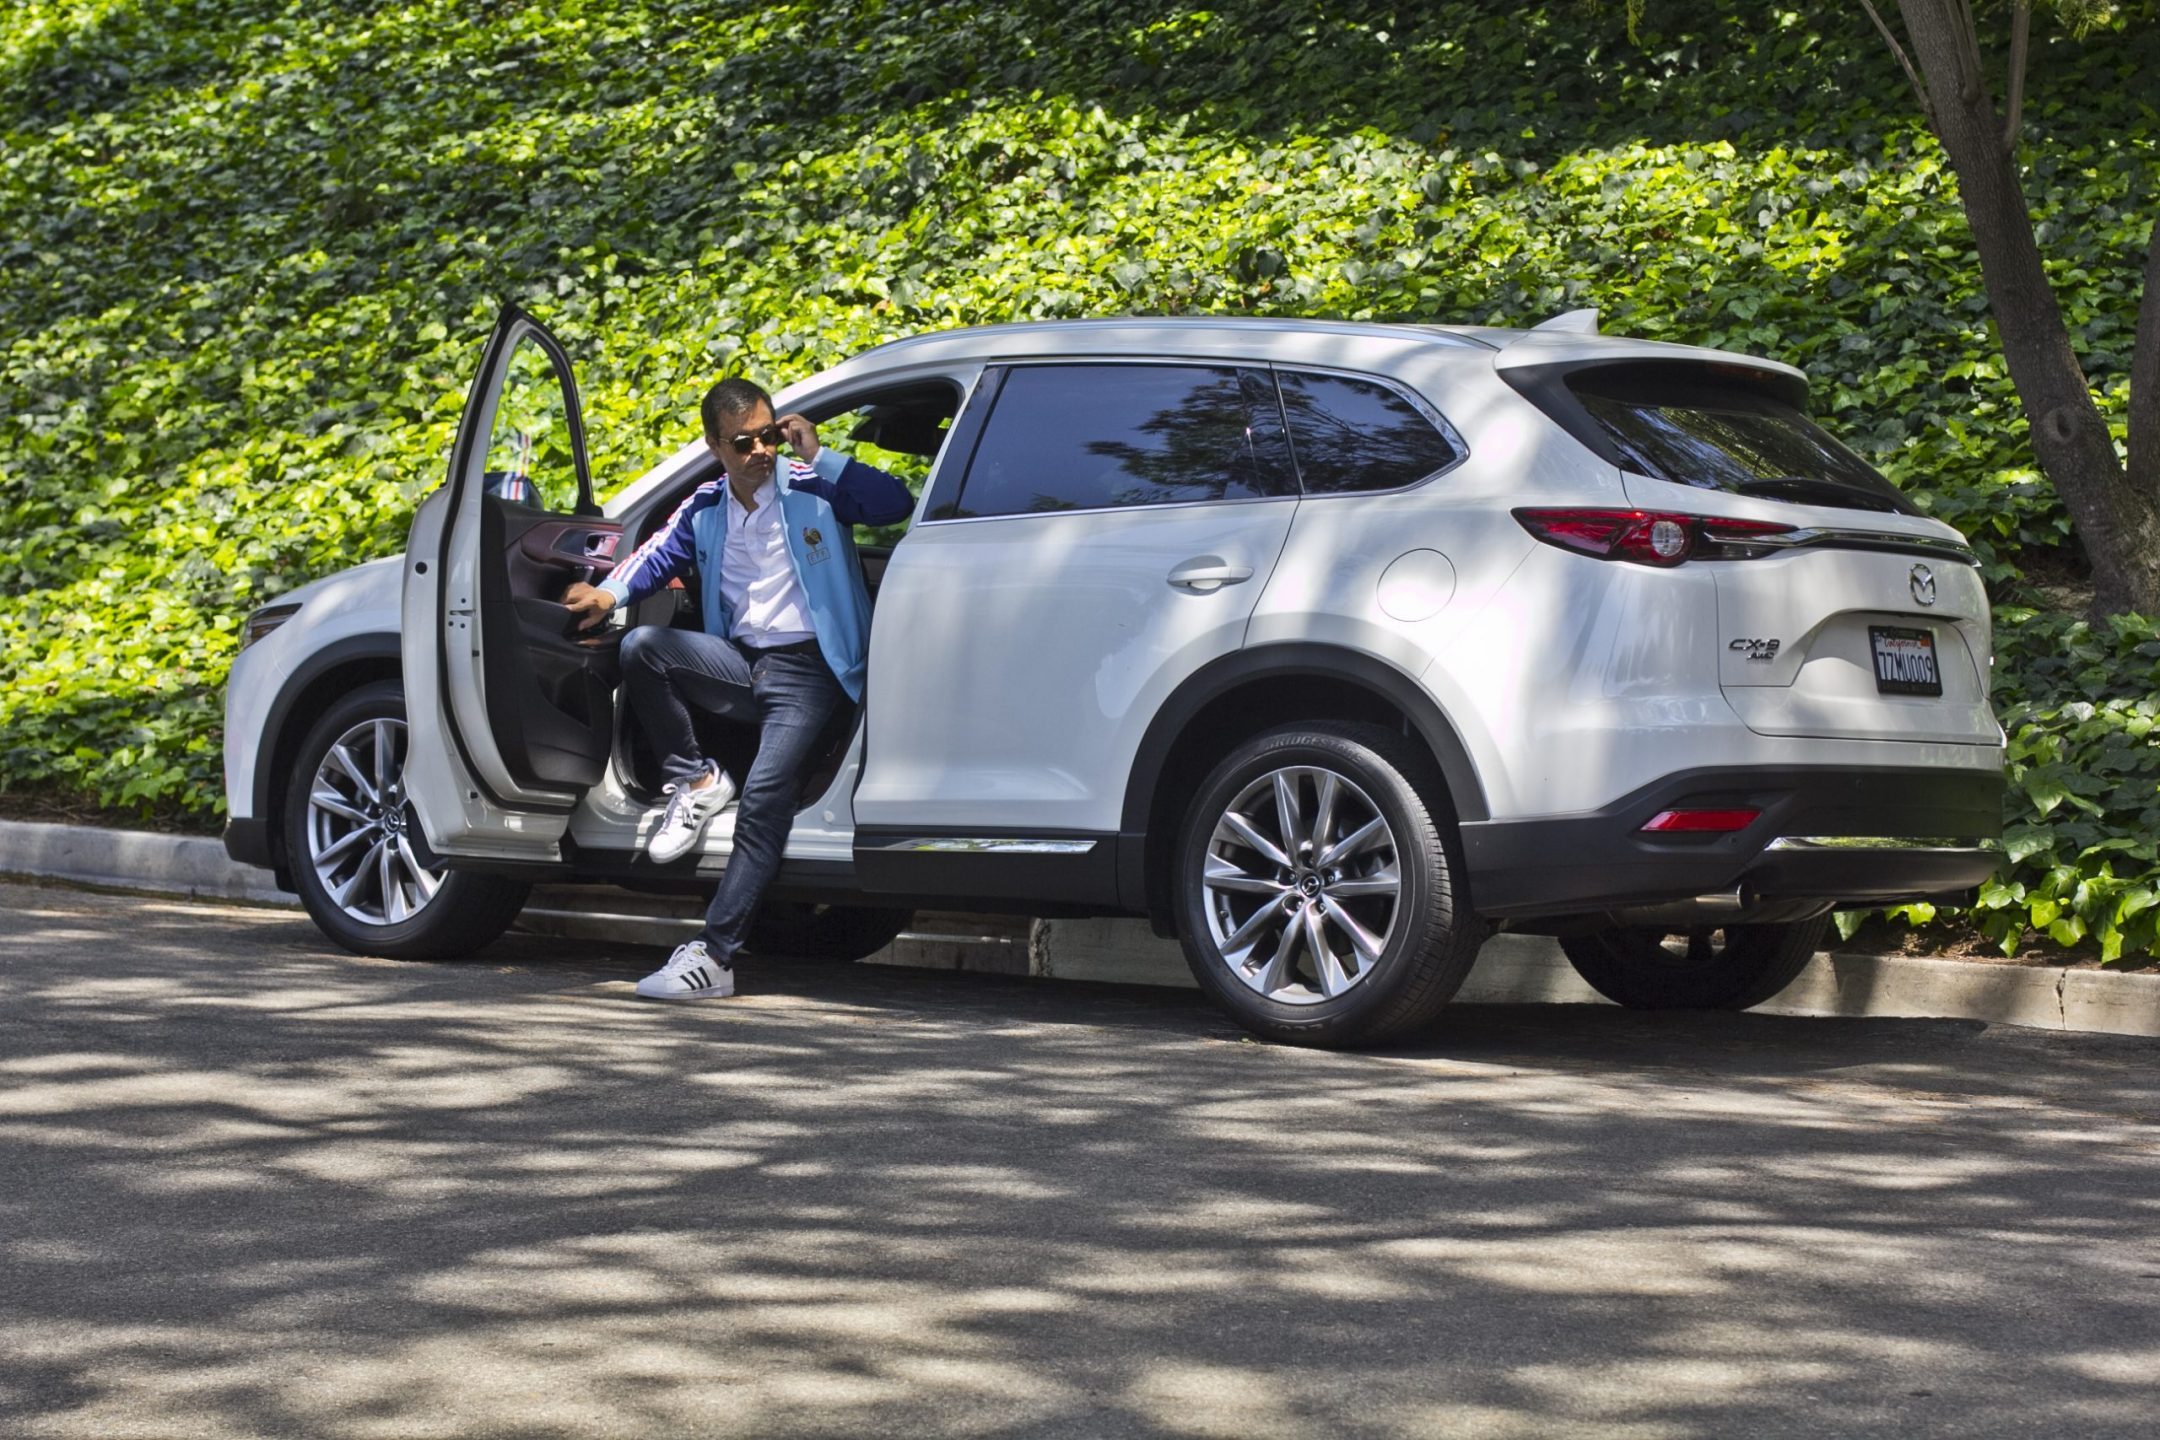 Mazda CX-9 SUV for Father's Day 2018